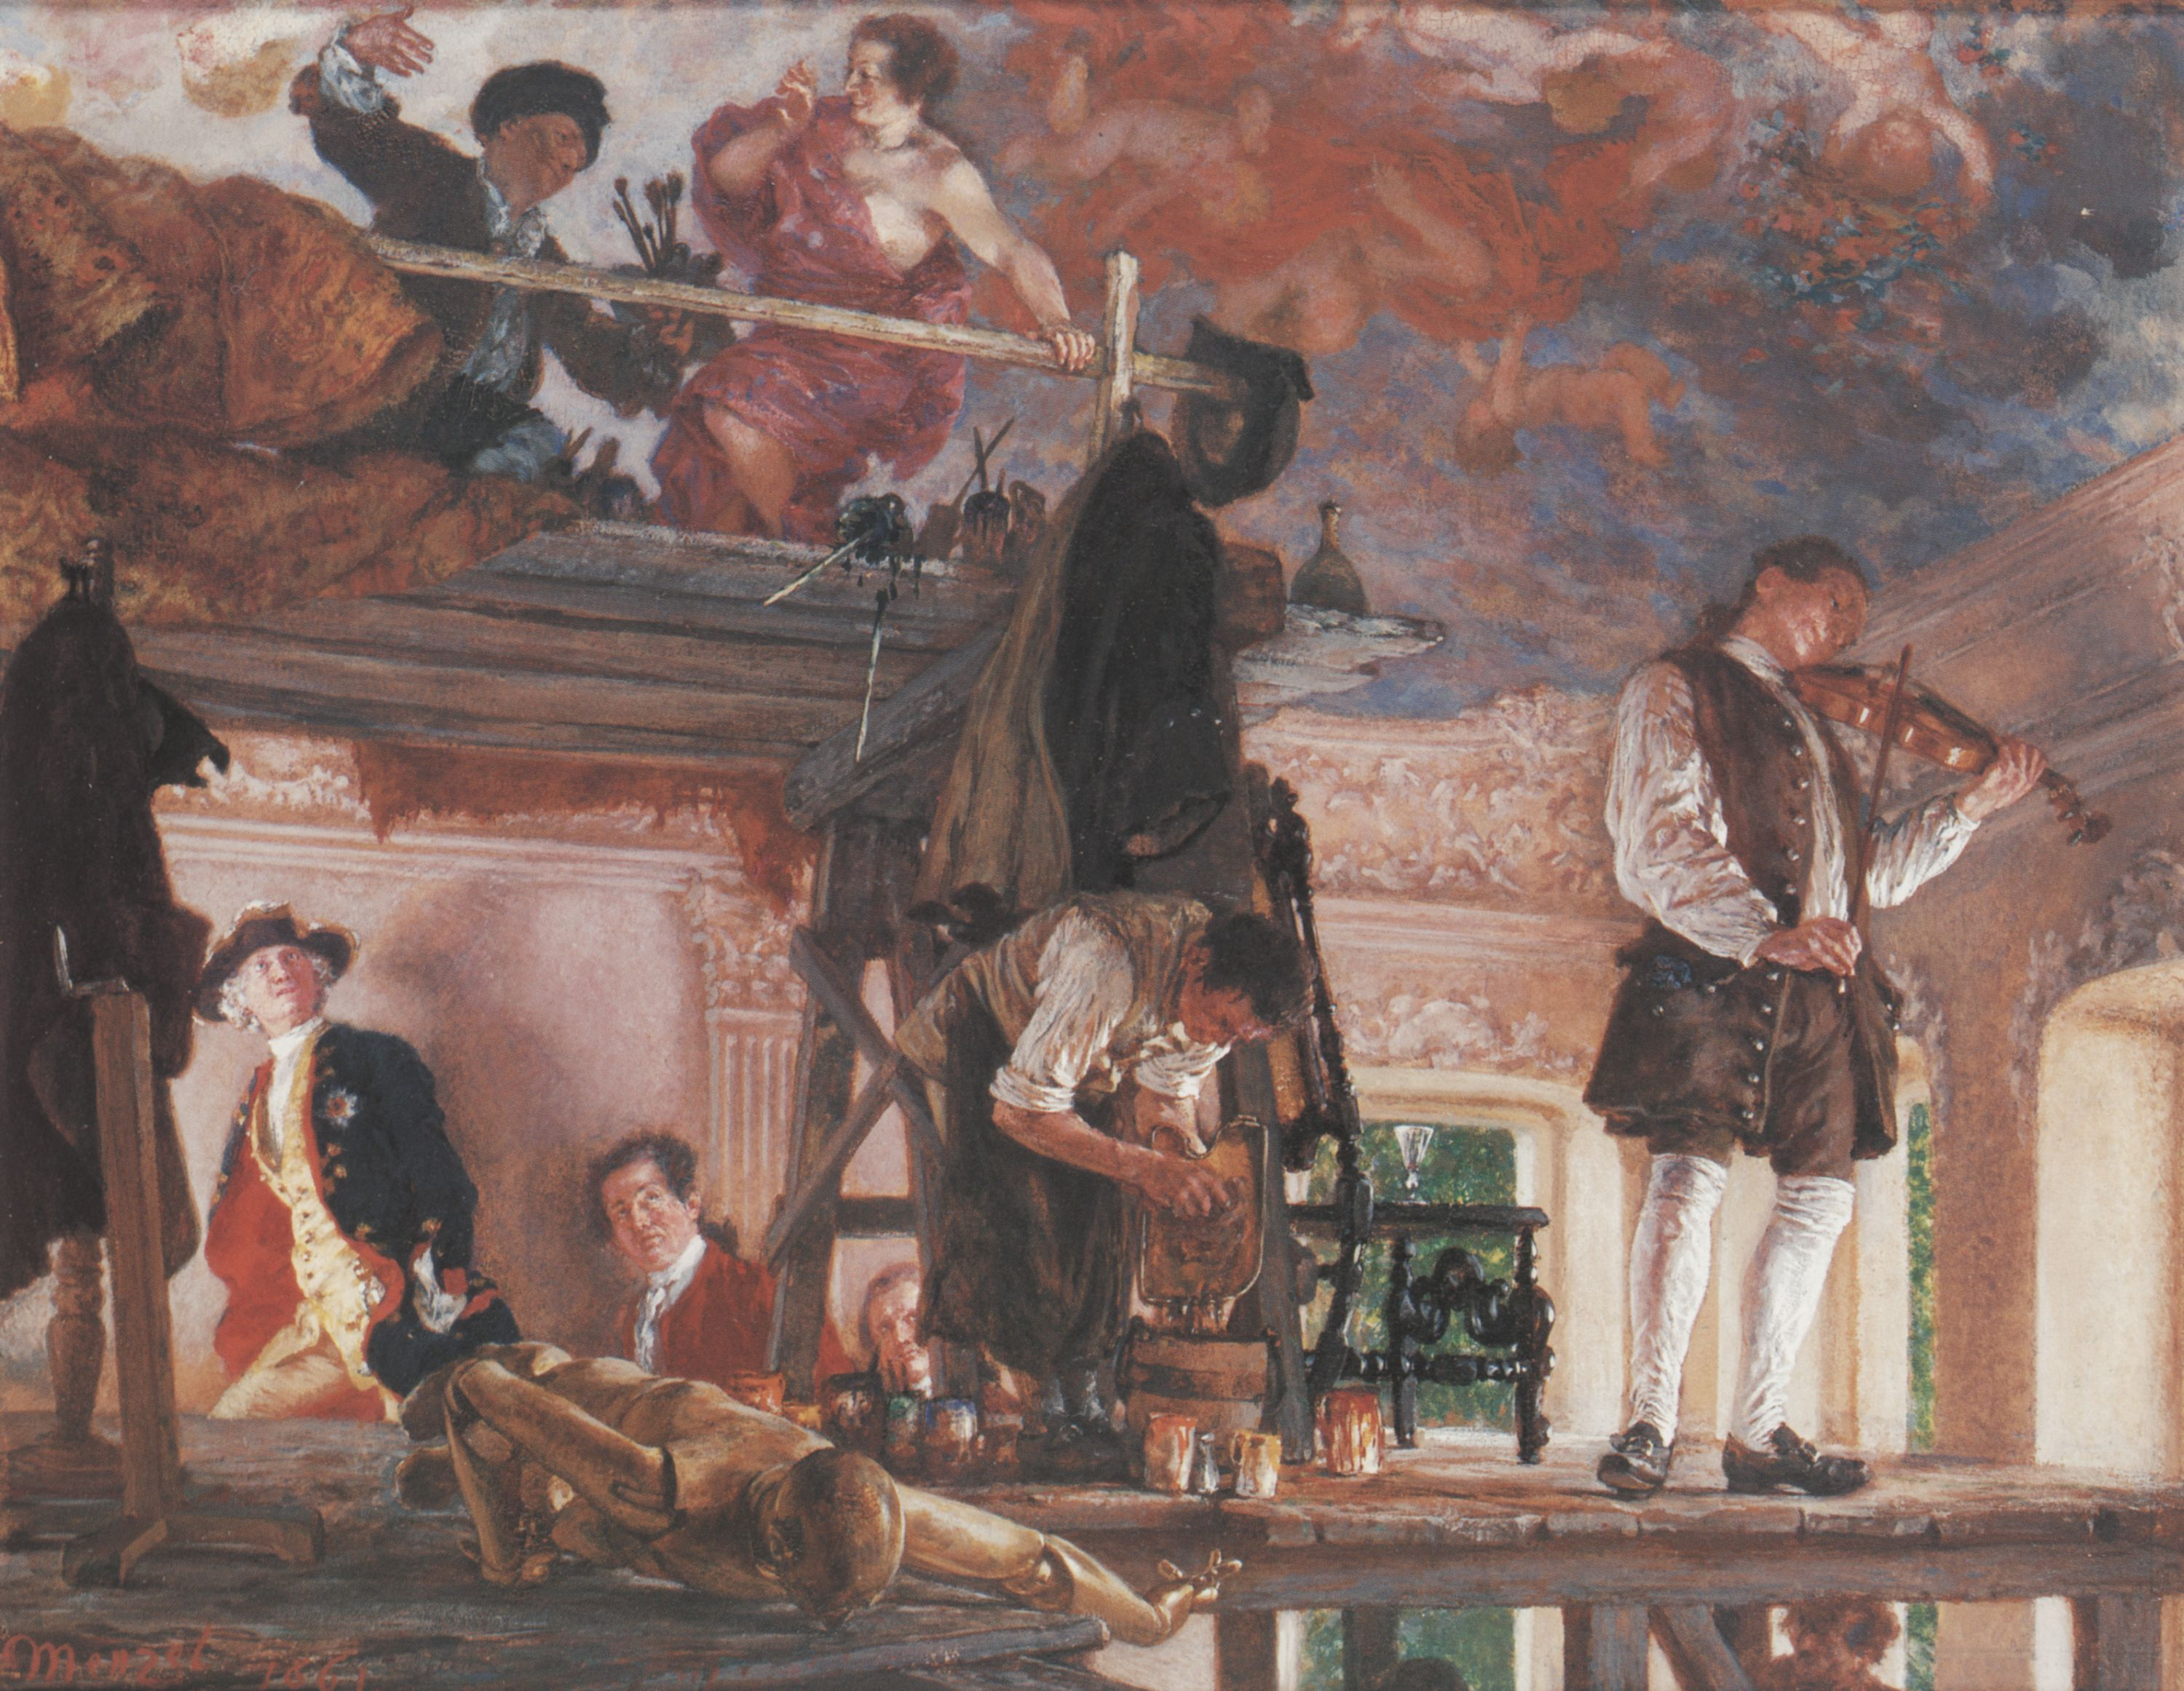 Adolph von Menzel. Crown Prince Frederick Pays a Visit to the Painter Pesne on his Scaffold at Rheinsberg. 1861, gouache on paper, board backing, 24 x 32 cm, Alte Nationalgalerie - Staatliche Museen zu Berlin. [Pinned 31-xii-2014]